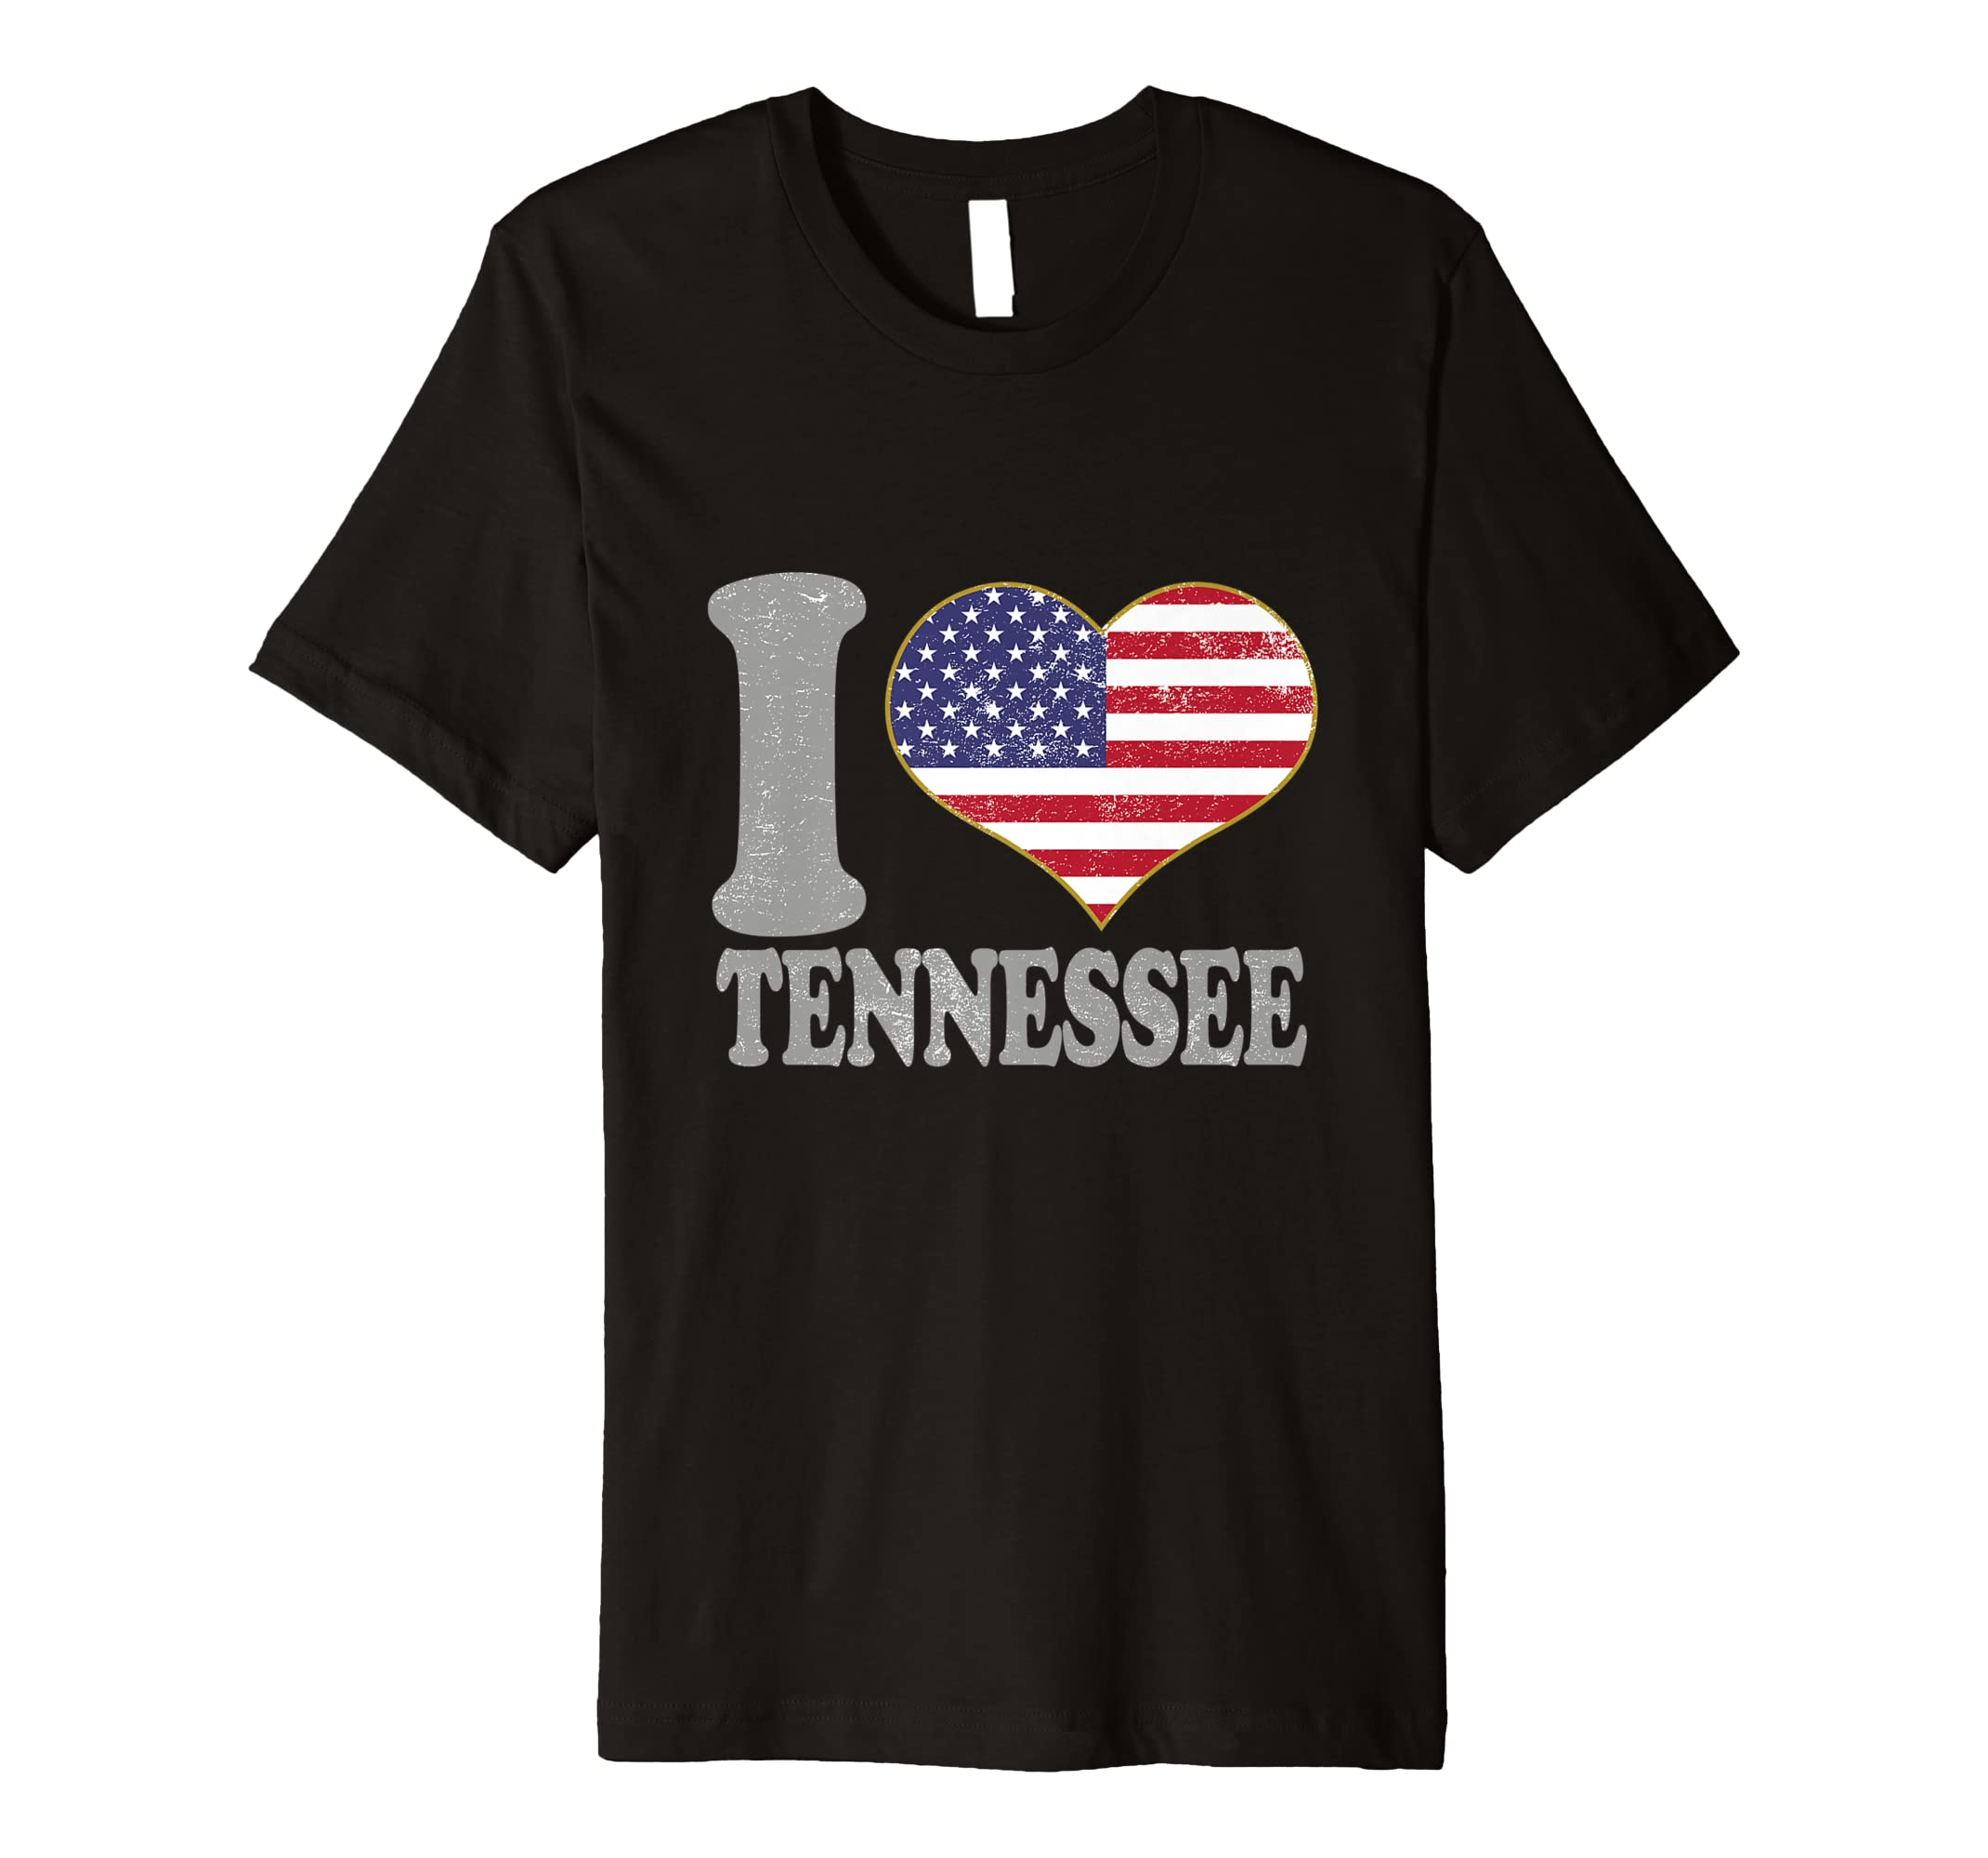 1057c661 Amazon.com: Tennessee T Shirt Clothes Adult Teen Kids Apparel ...